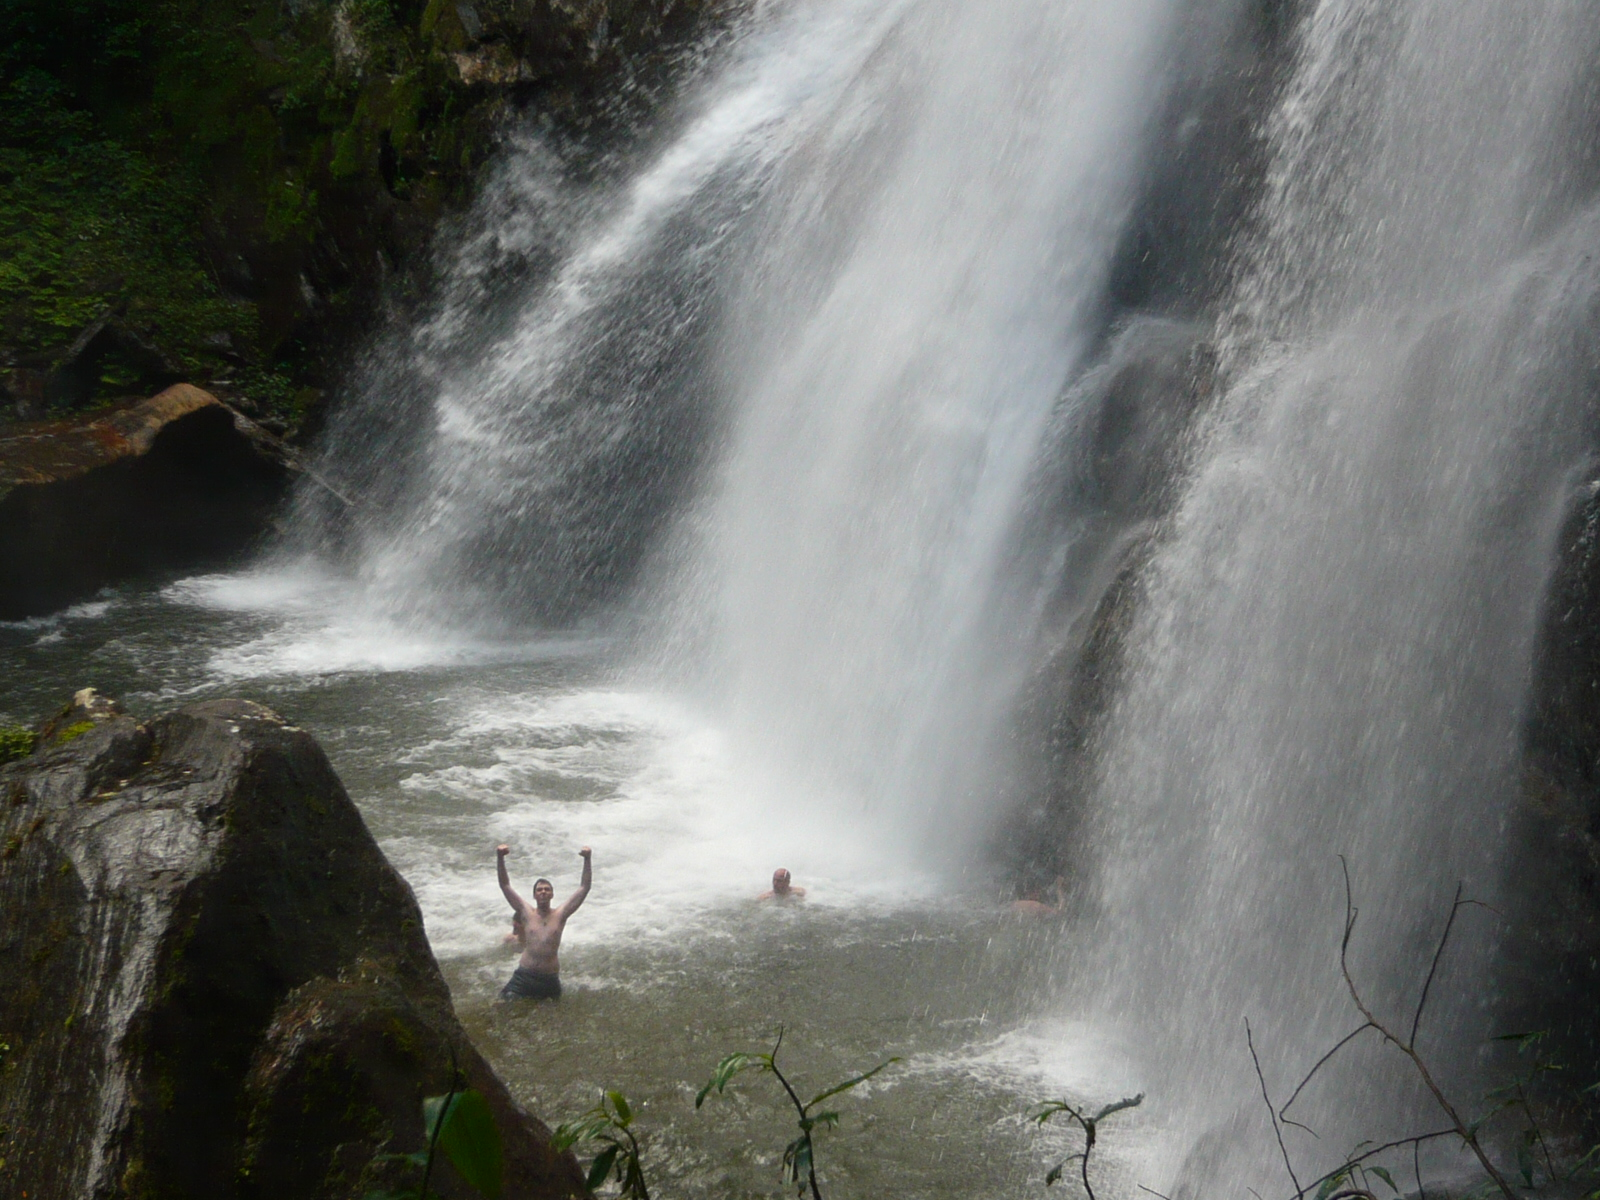 Sanje upper falls, Udzungwa Mountains